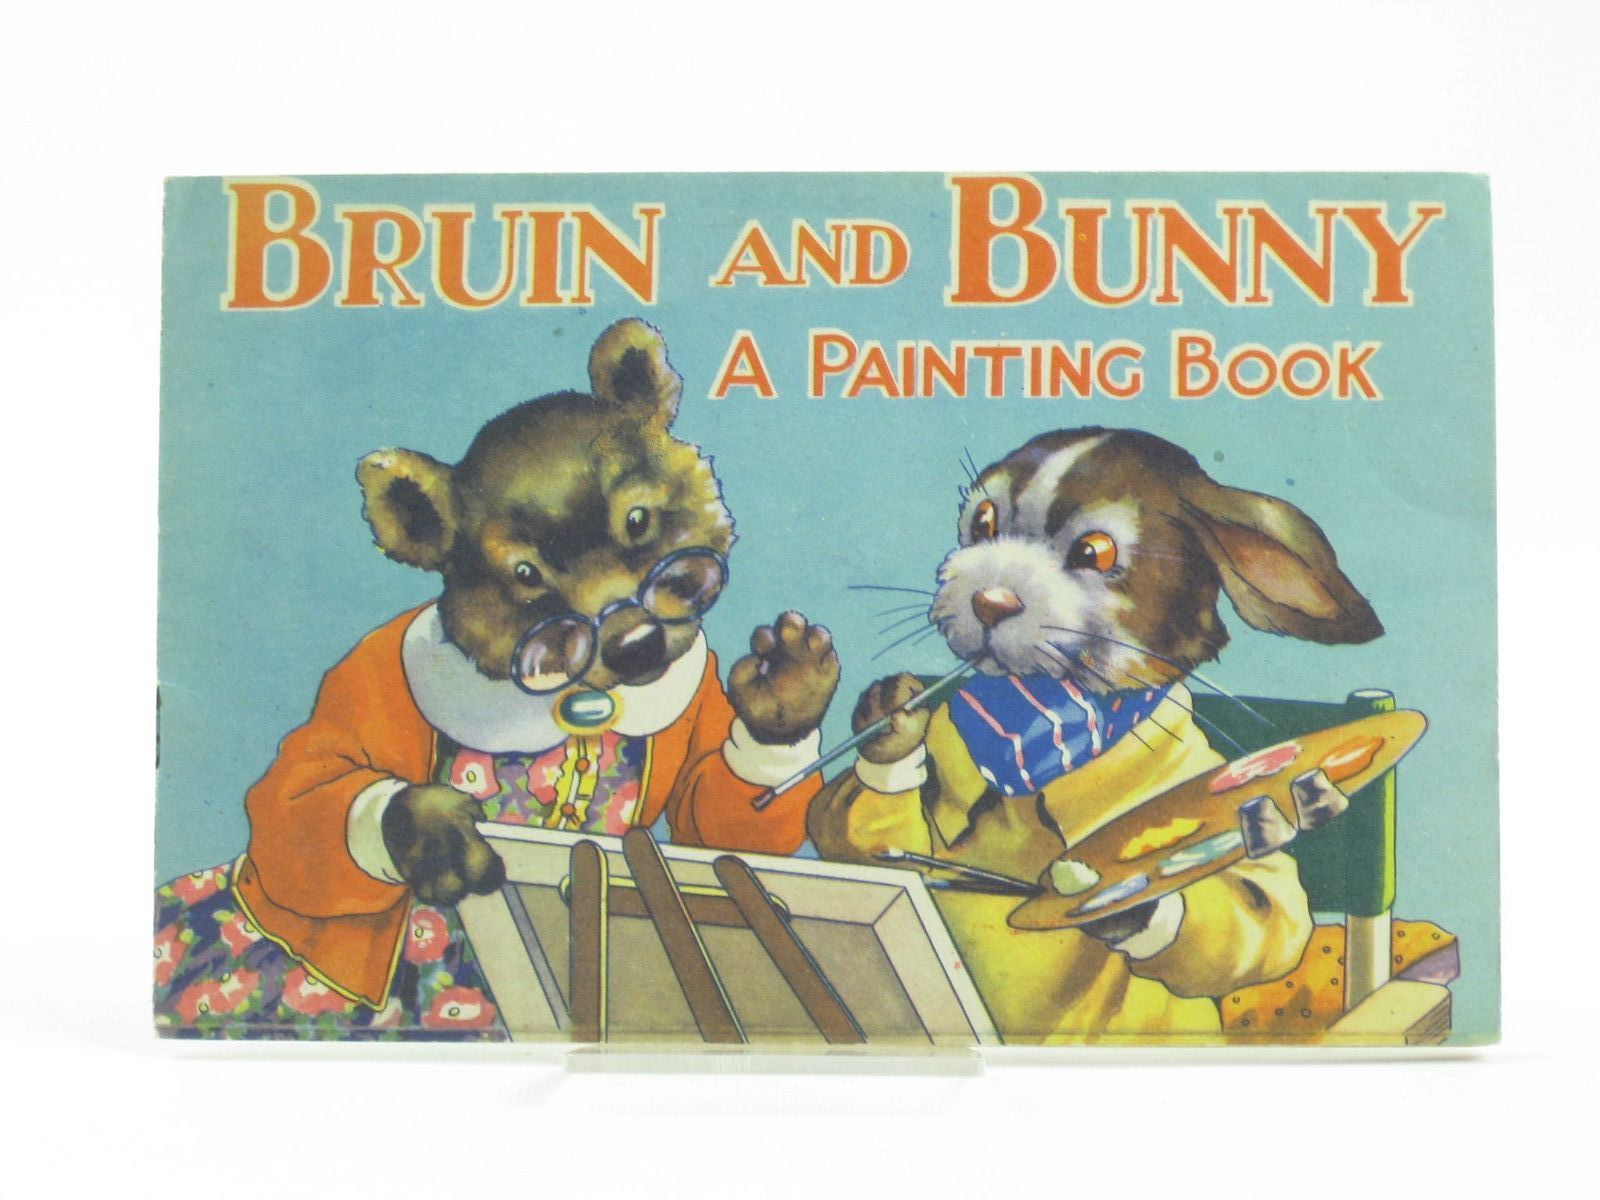 Photo of BRUIN AND BUNNY - A PAINTING BOOK FOR BOYS AND GIRLS published by B.B. Ltd. (STOCK CODE: 1311147)  for sale by Stella & Rose's Books